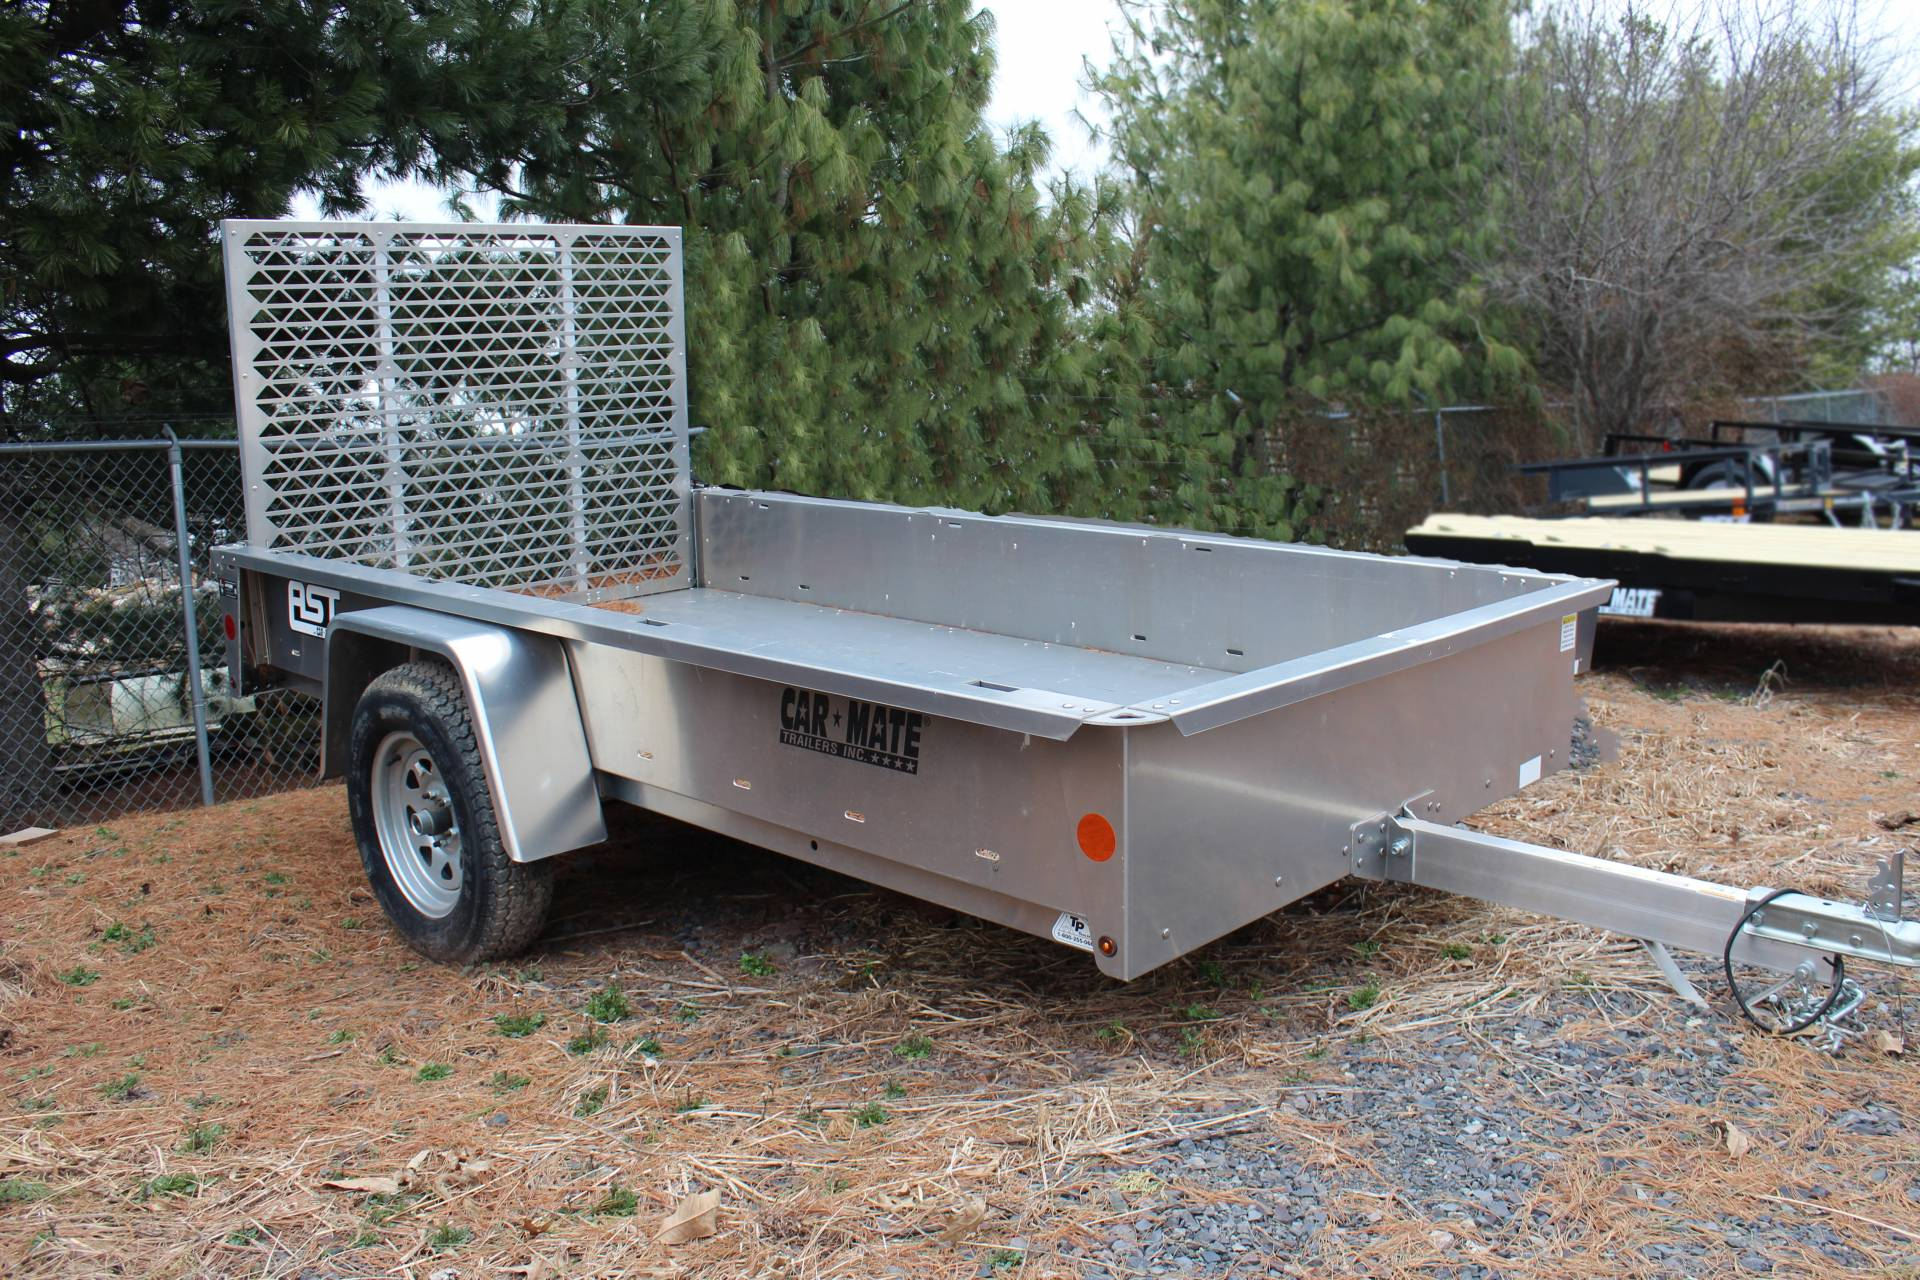 Affordable Car Mate Trailer